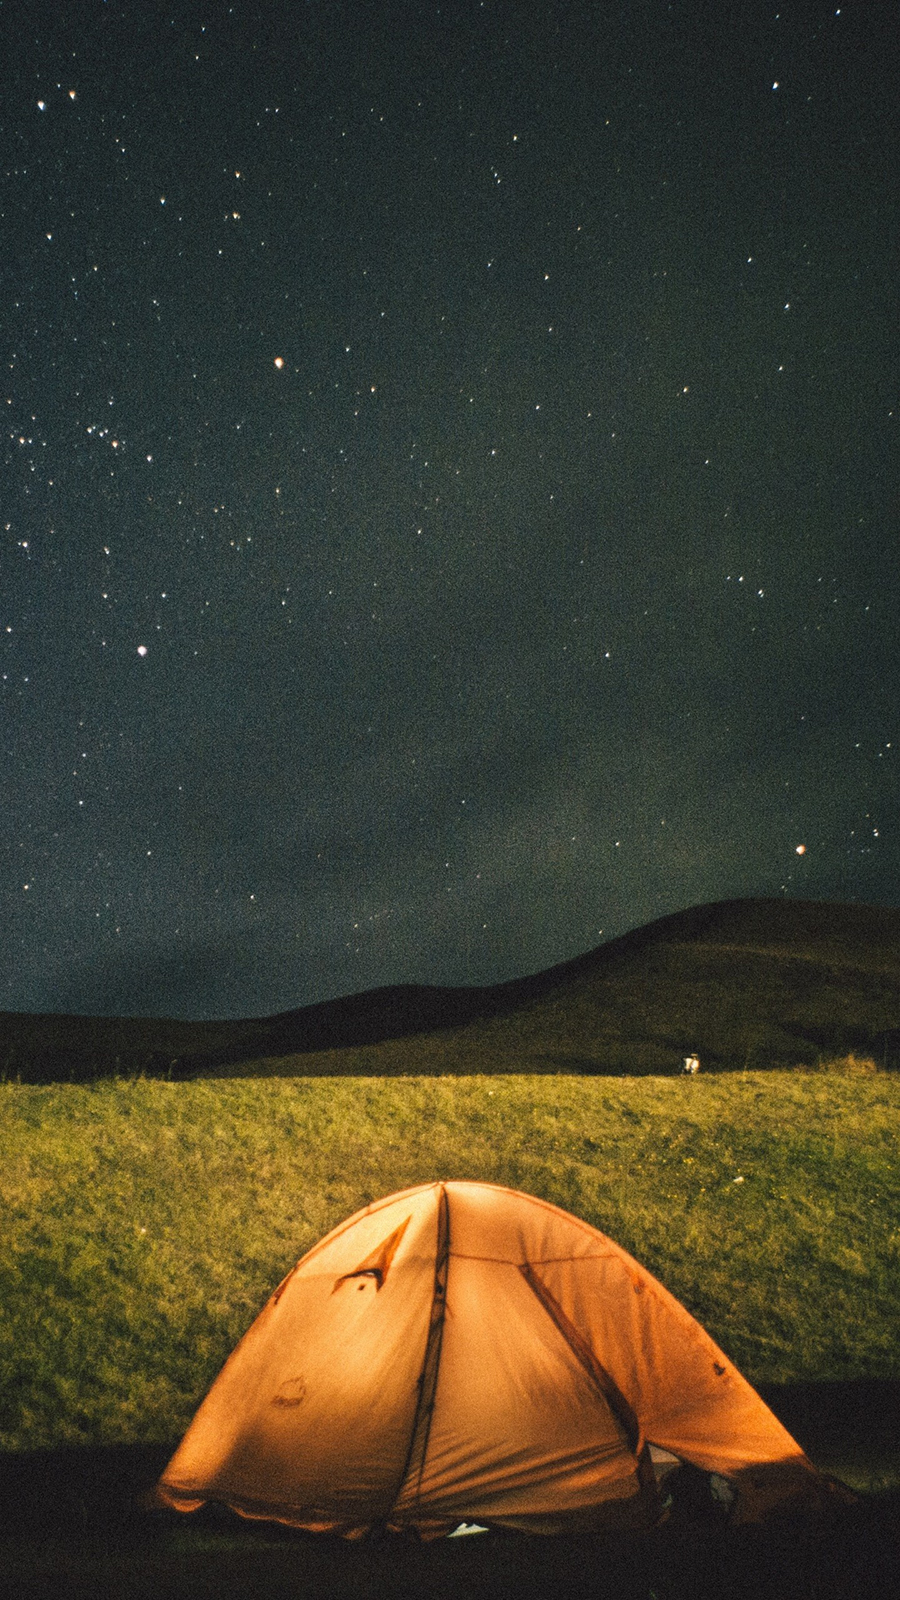 Tent Starry Sky Night Wallpapers Free Download